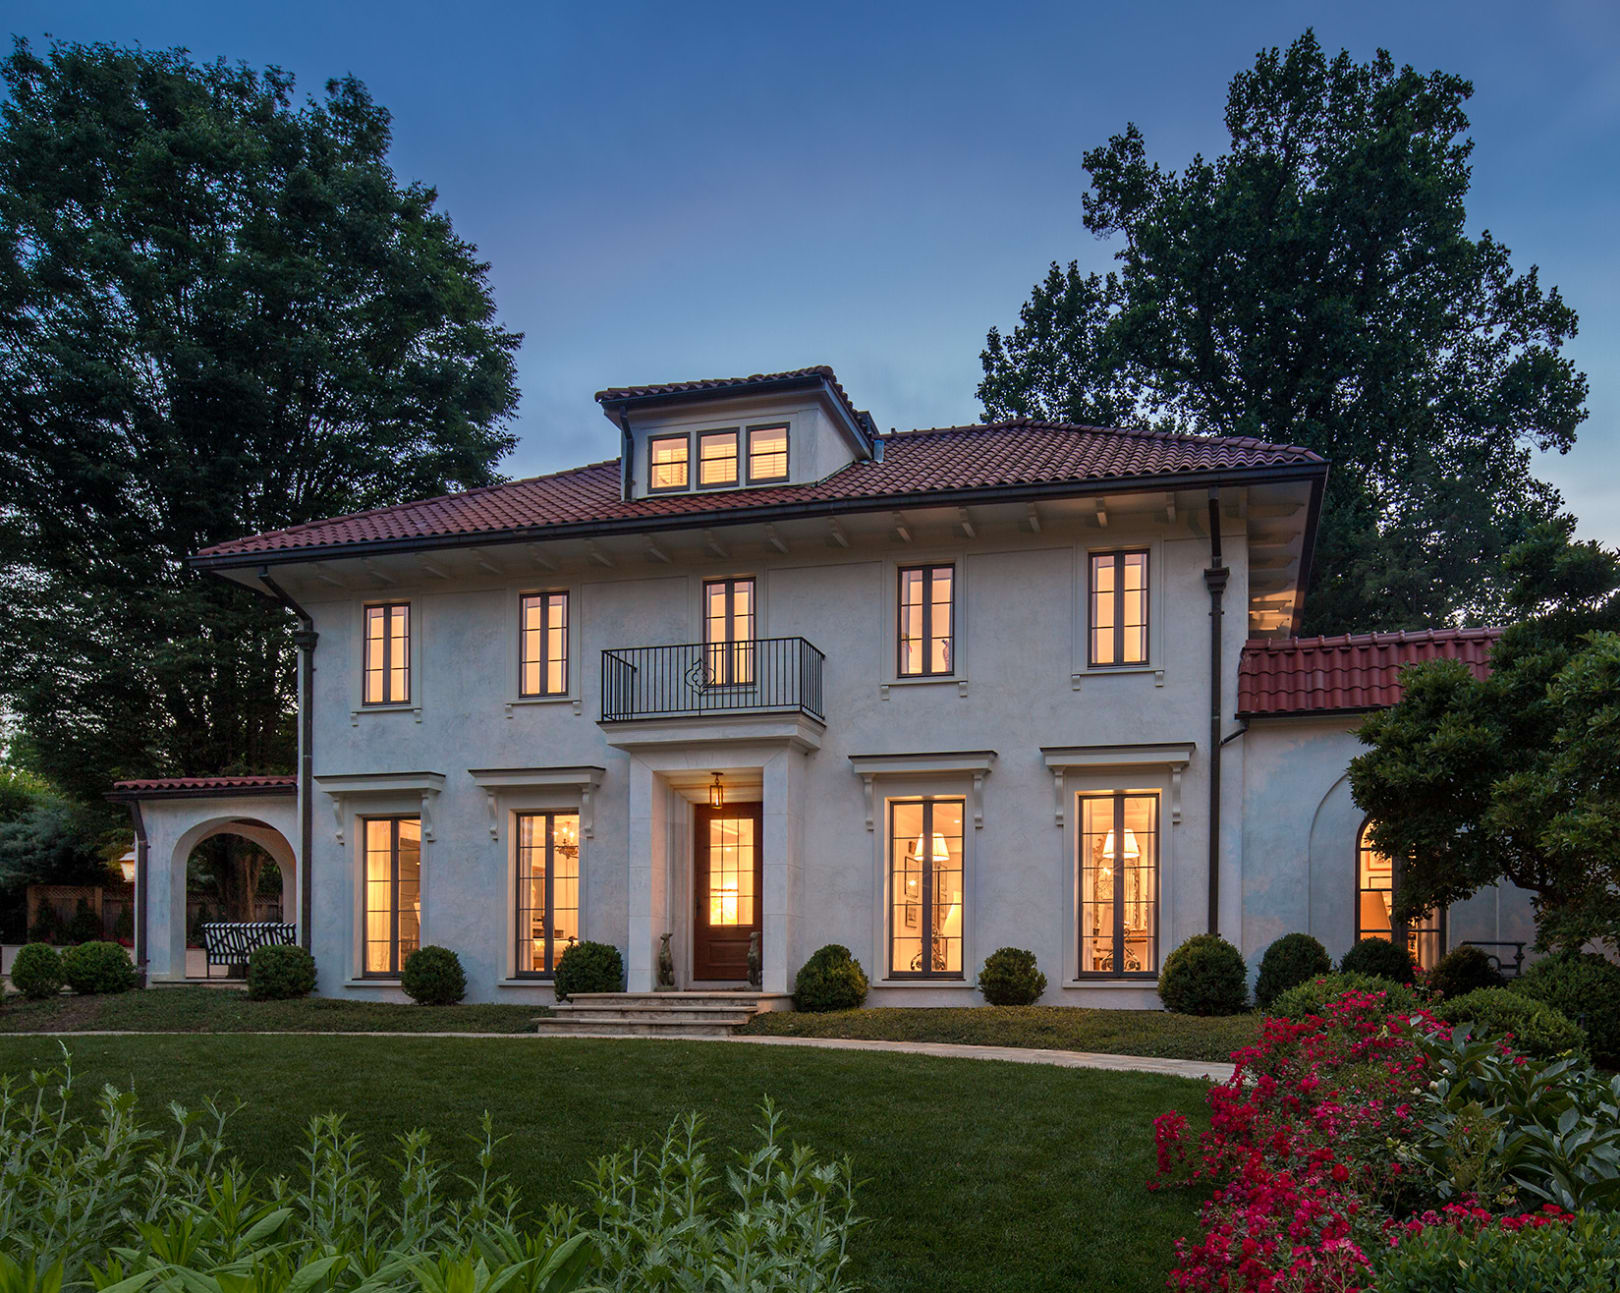 Mediterranean Revival Renovation Aia